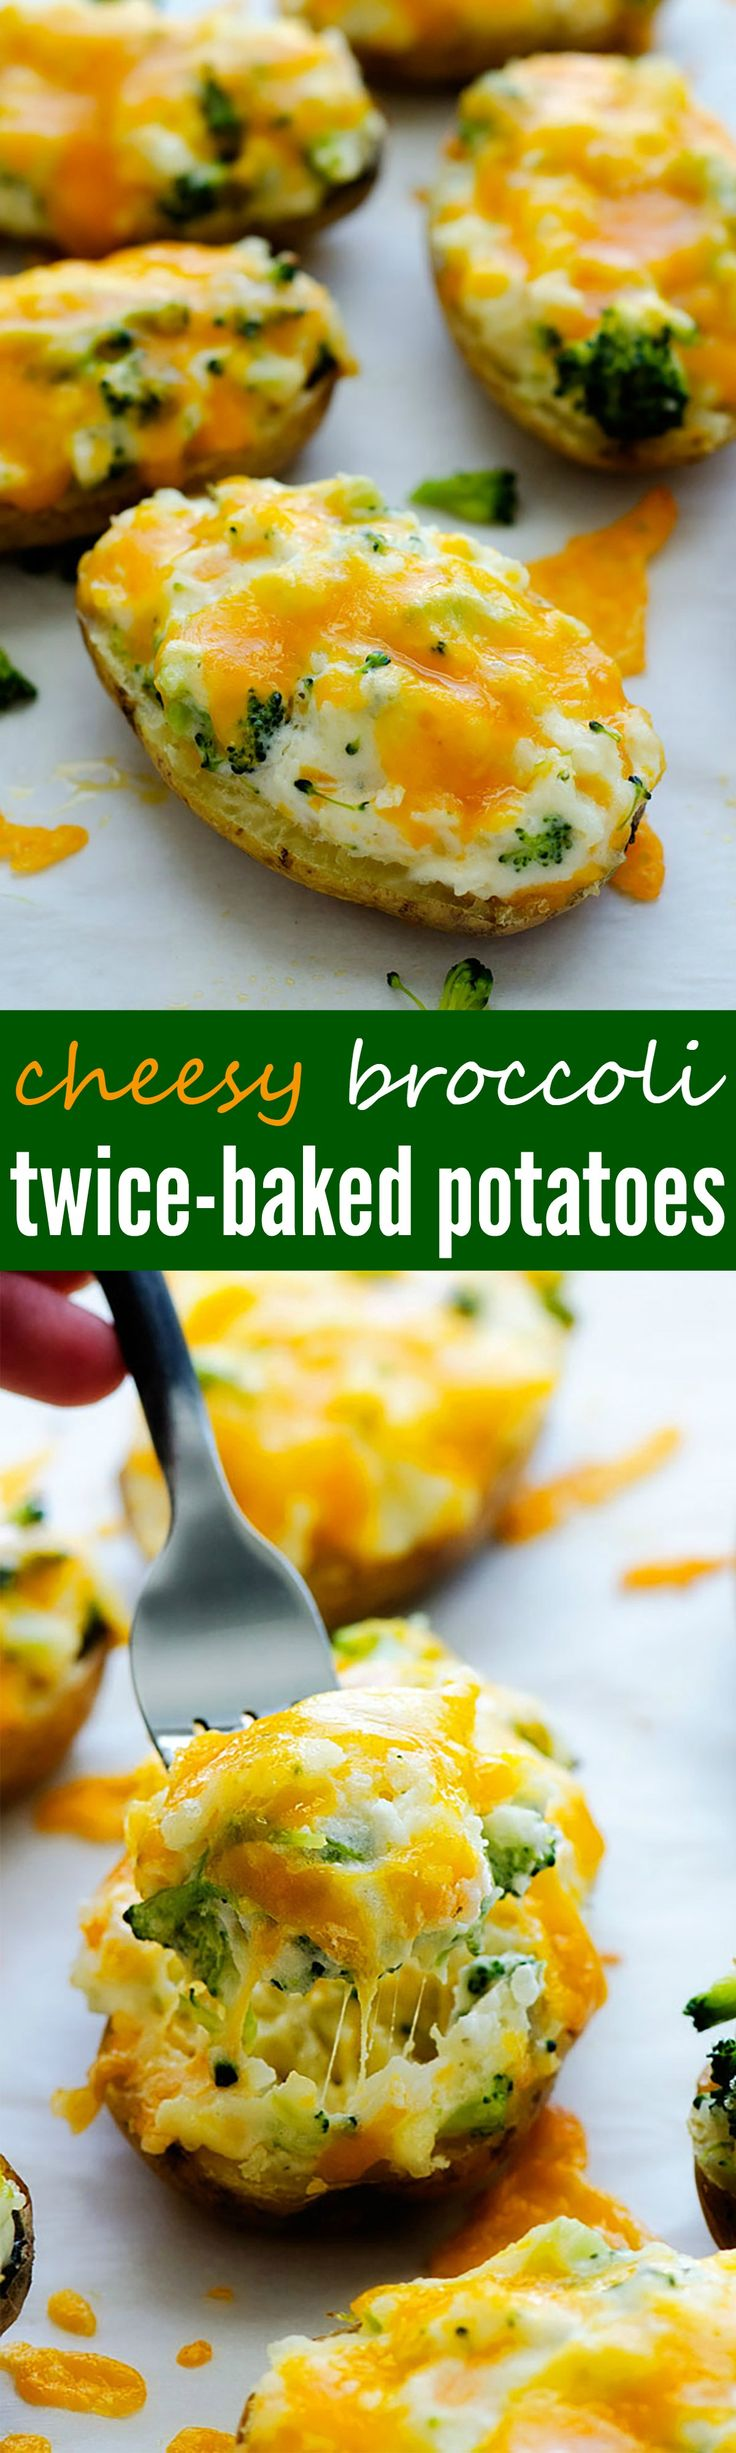 Delicious twice-baked potatoes loaded with broccoli, cheese and more!